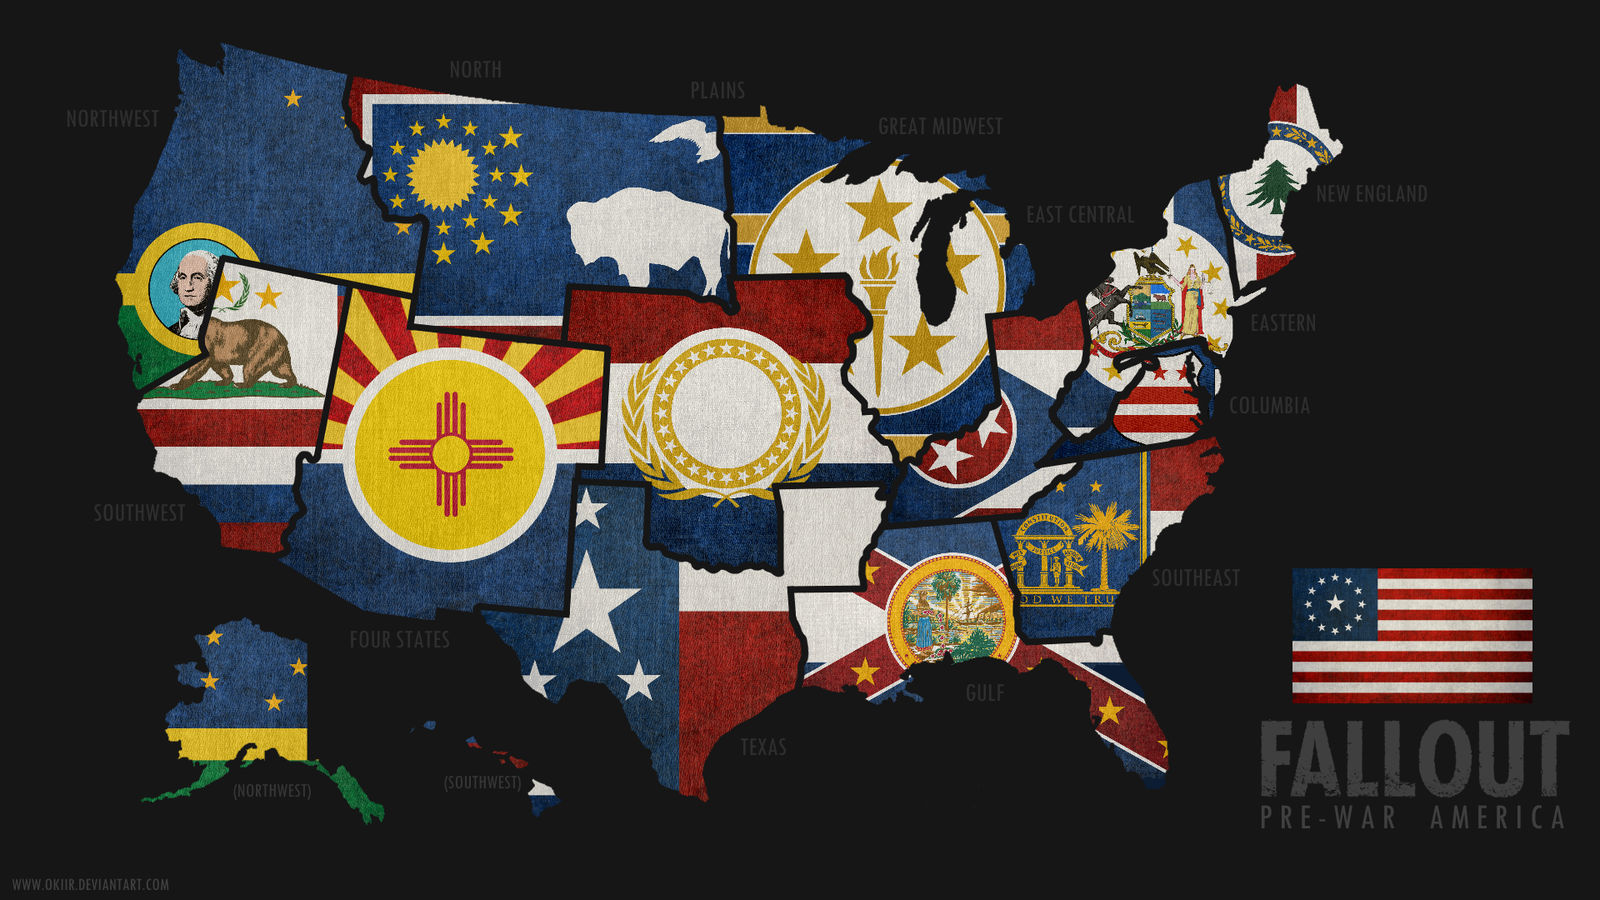 Map Of America Fallout.Fallout Map Of Pre War America By Okiir On Deviantart